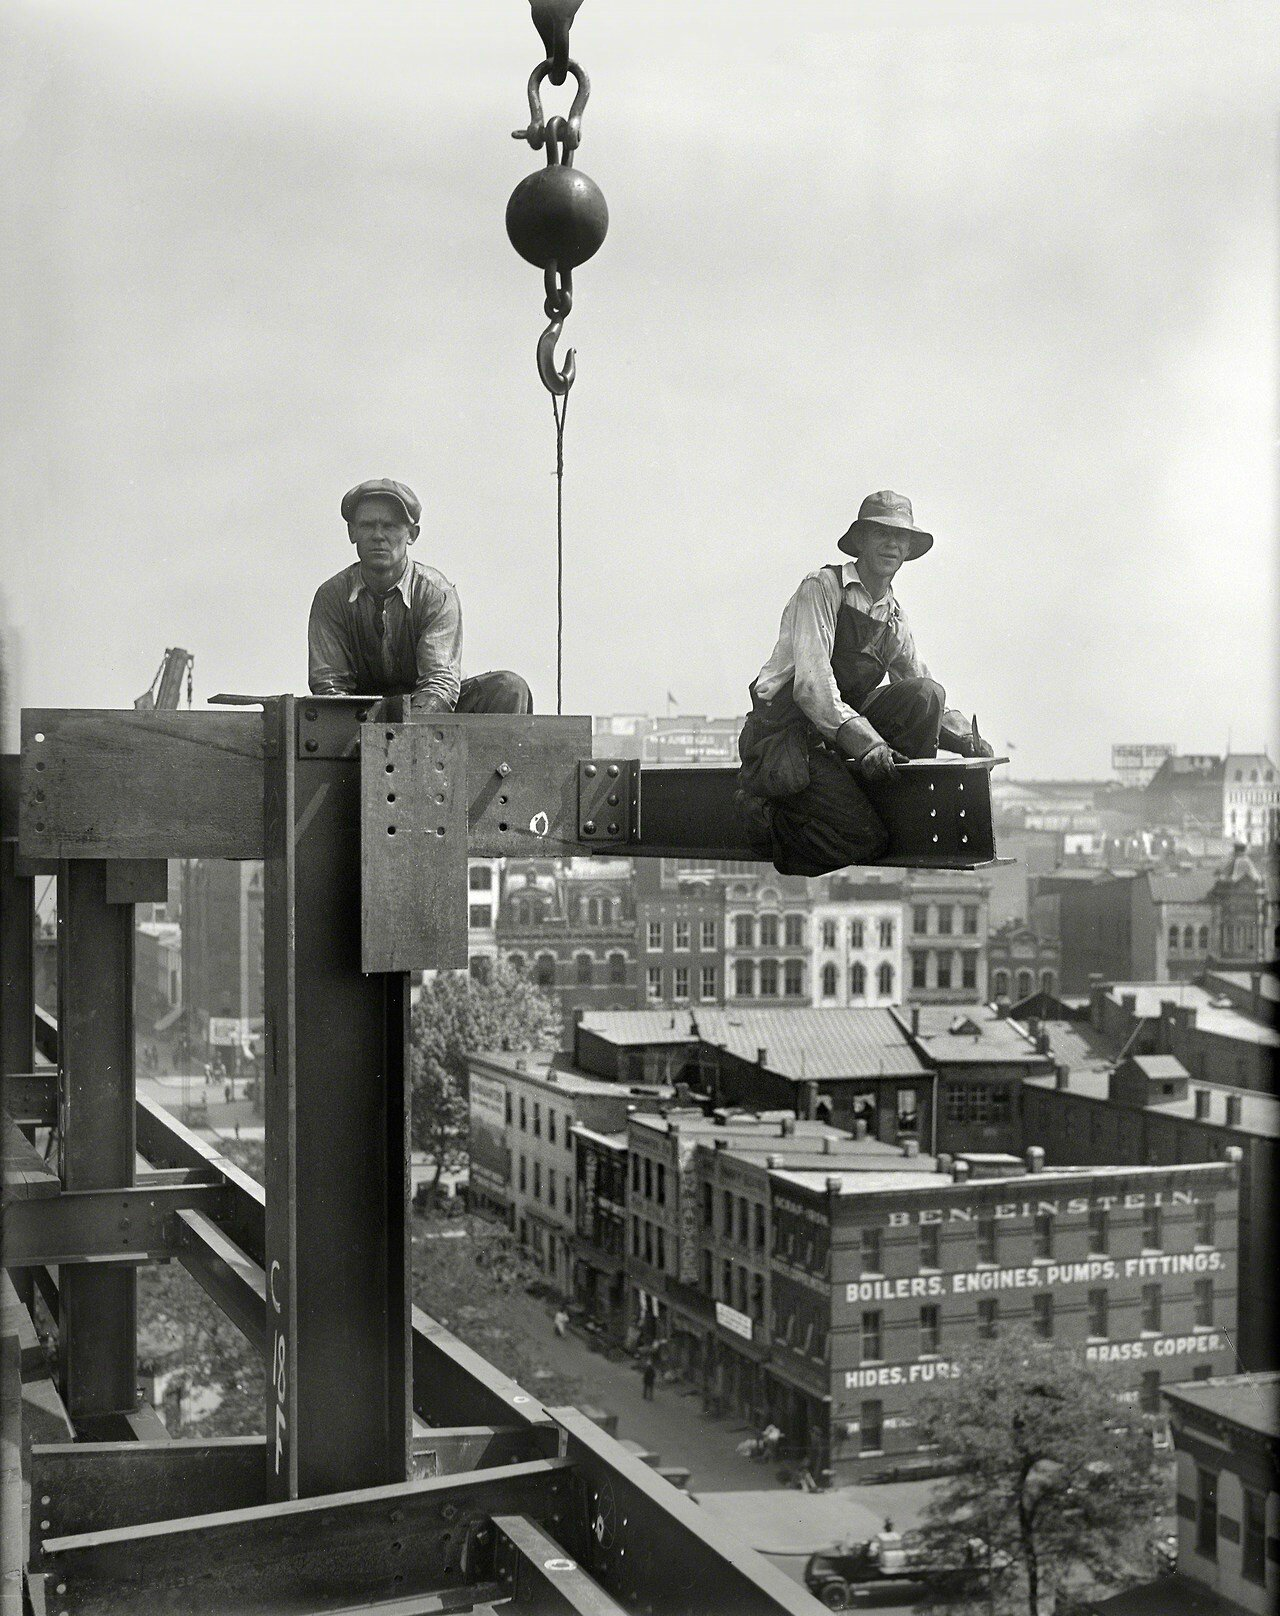 Workers on building under construction, Washington, D